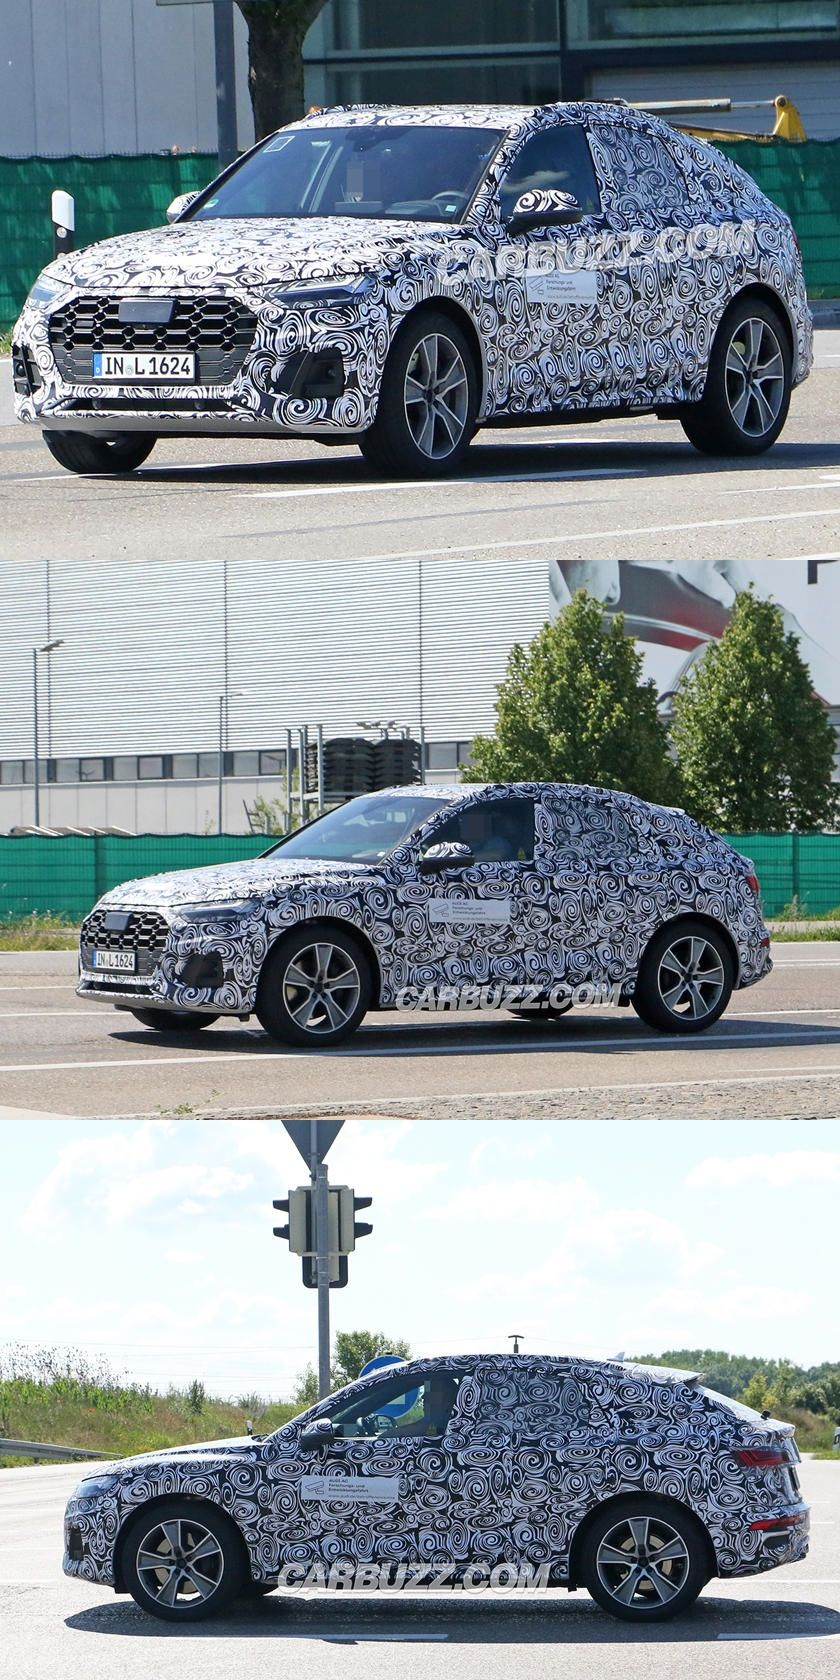 Spied 2021 Audi Q5 Sportback Has The Bmw X4 In Its Sights This Will Be Audi S Answer To The Bmw X4 And Mercedes Glc Coupe In 2020 Bmw X4 Audi Q5 Audi